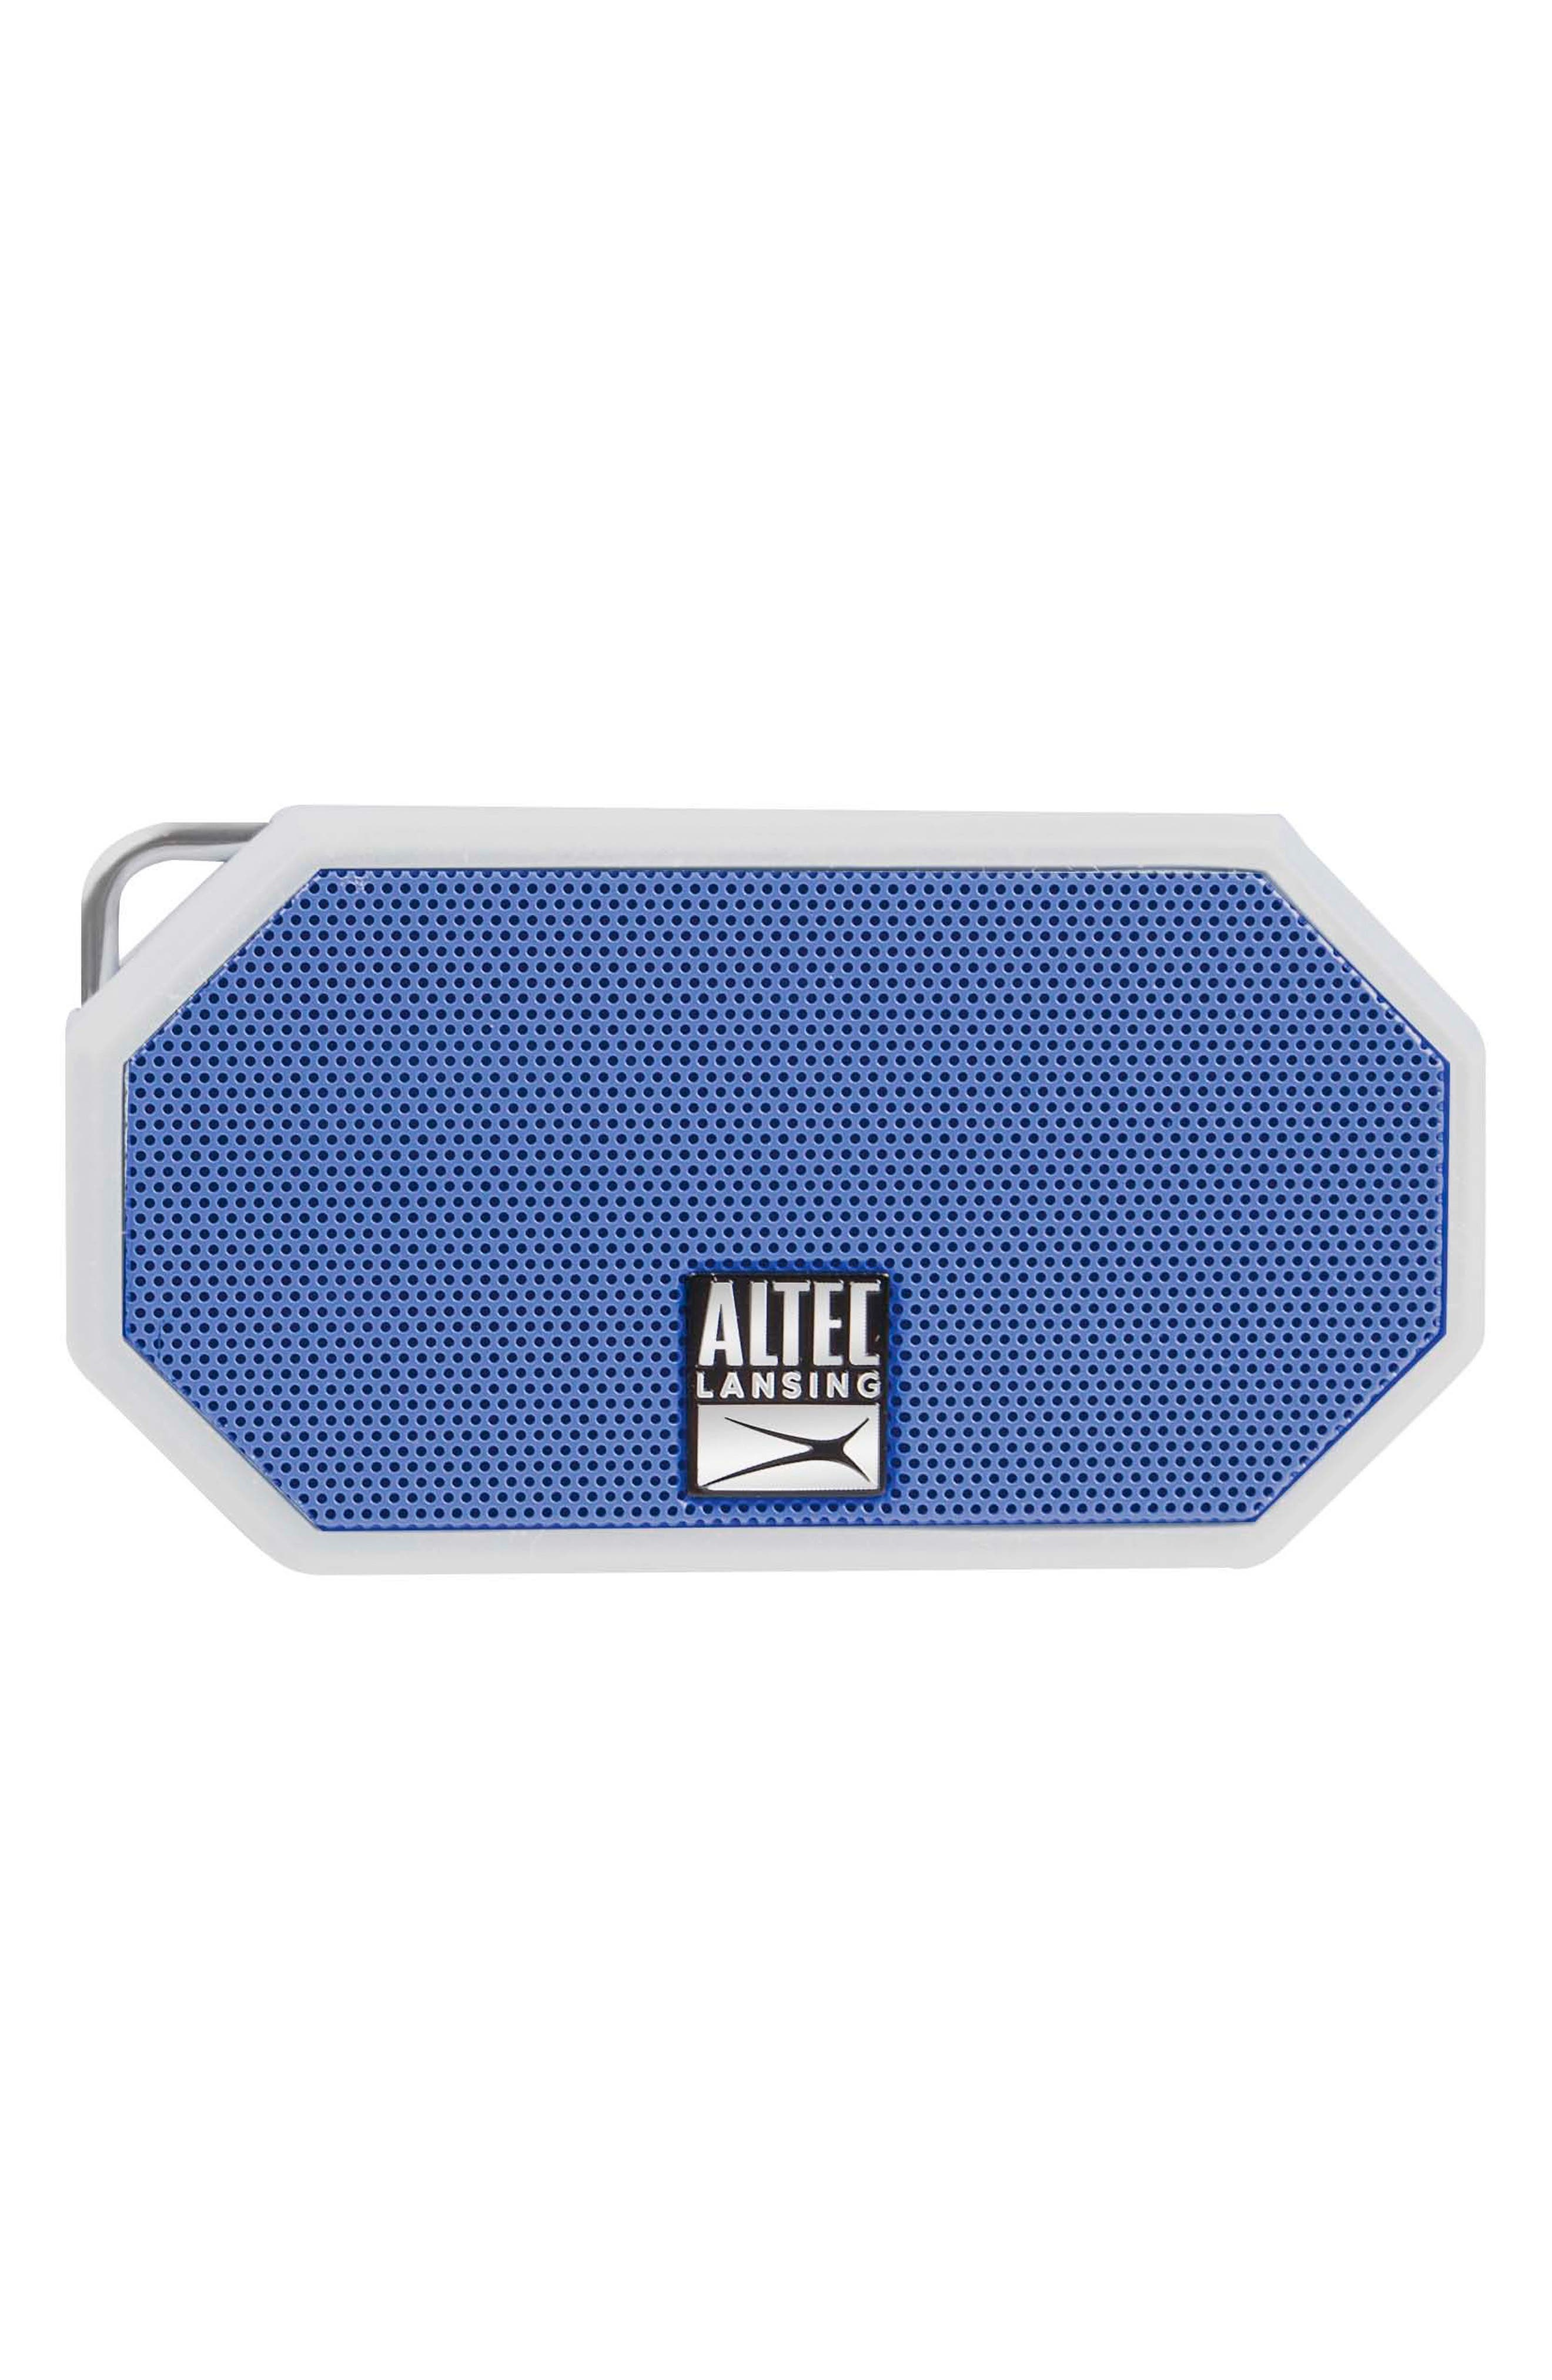 ALTEC LANSING,                             Mini H2O 3 Waterproof Compact Speaker,                             Main thumbnail 1, color,                             WHTE/ DEEP MID BLUE